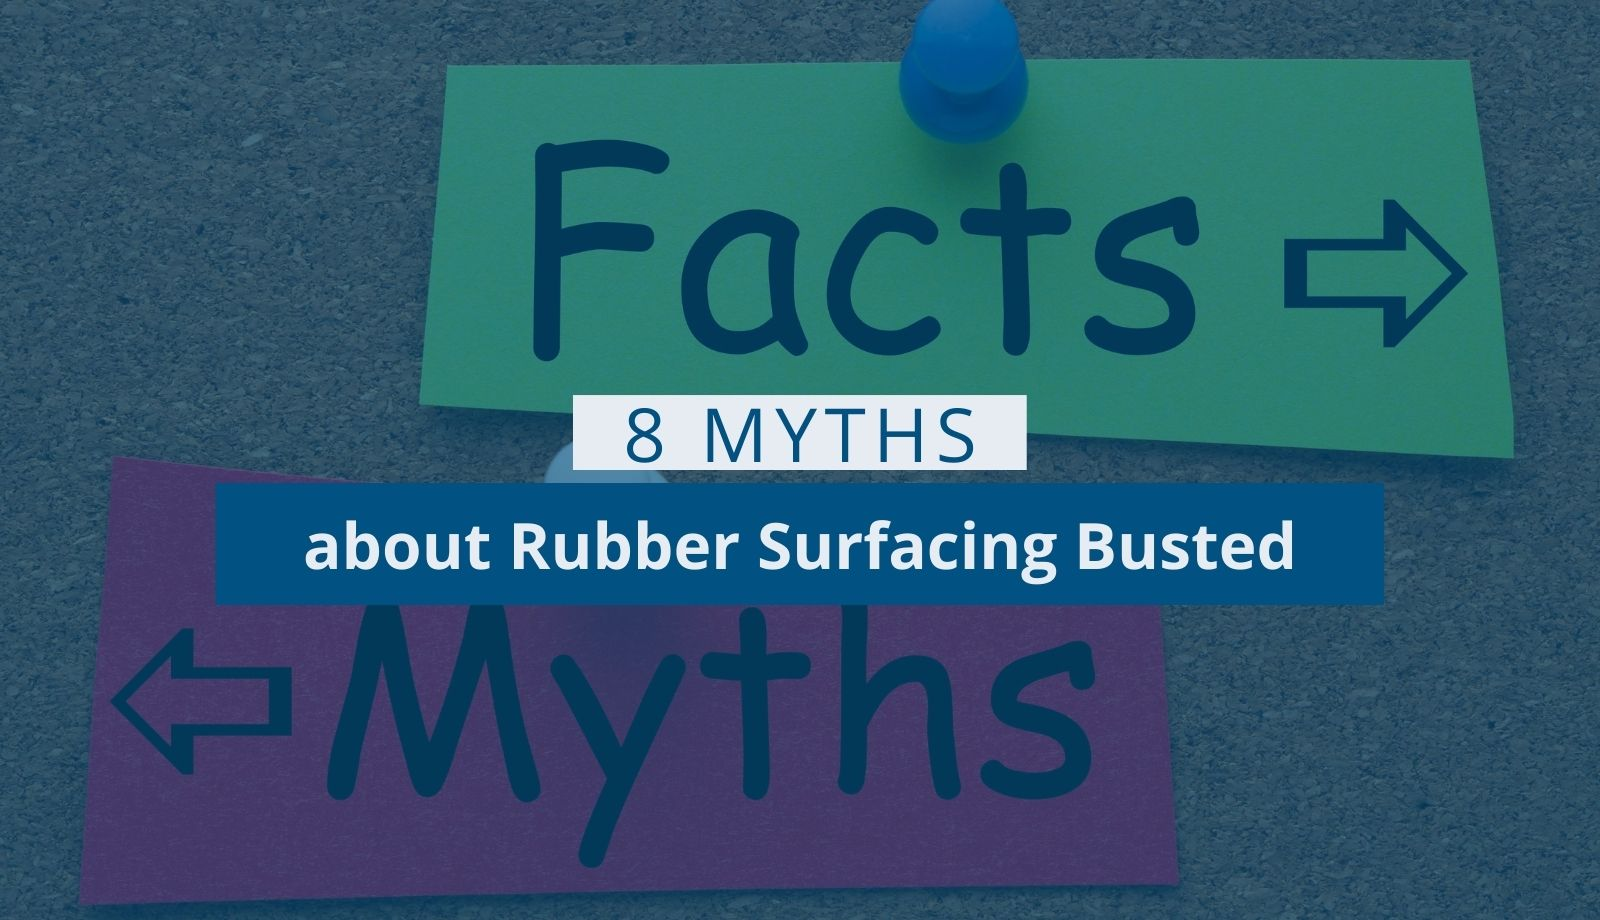 8 Myths about Rubber Surfacing Busted